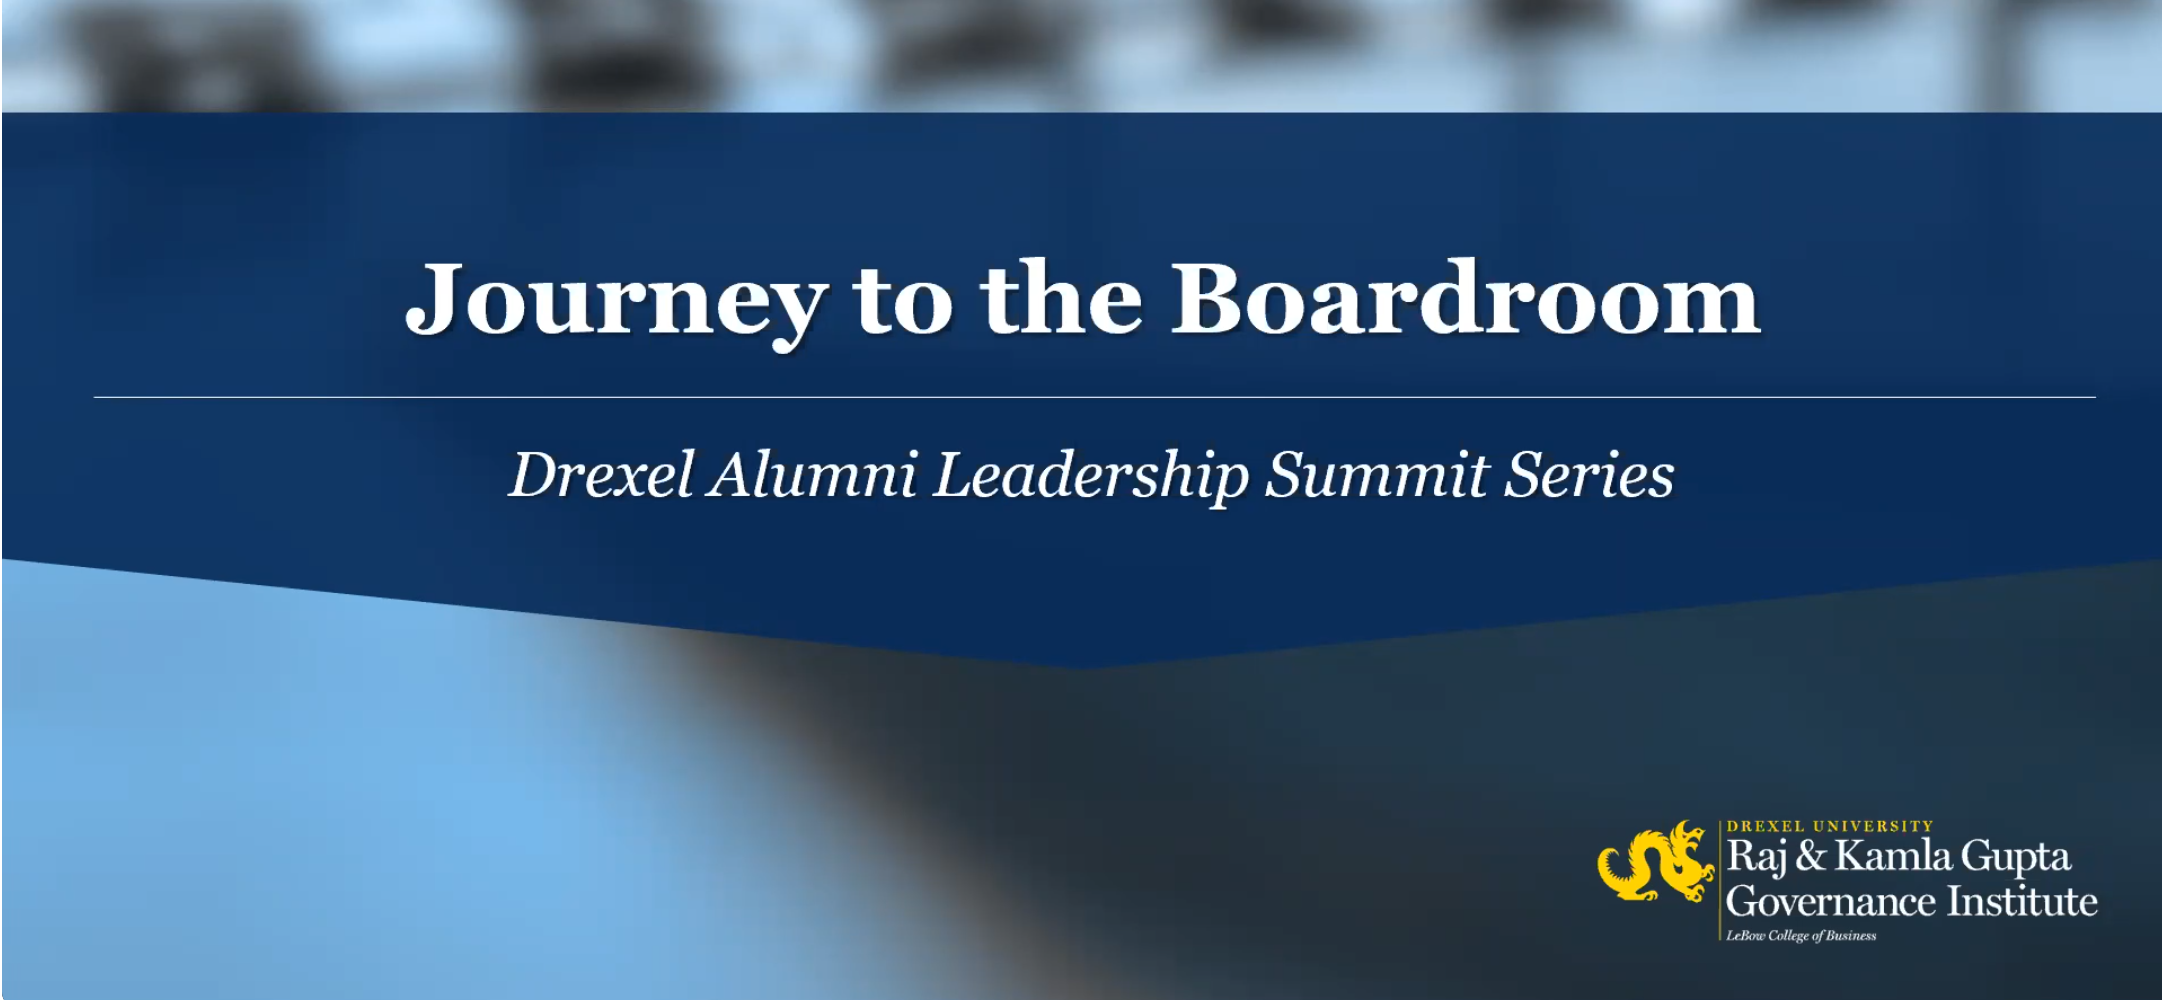 Journey to the Boardroom Graphic